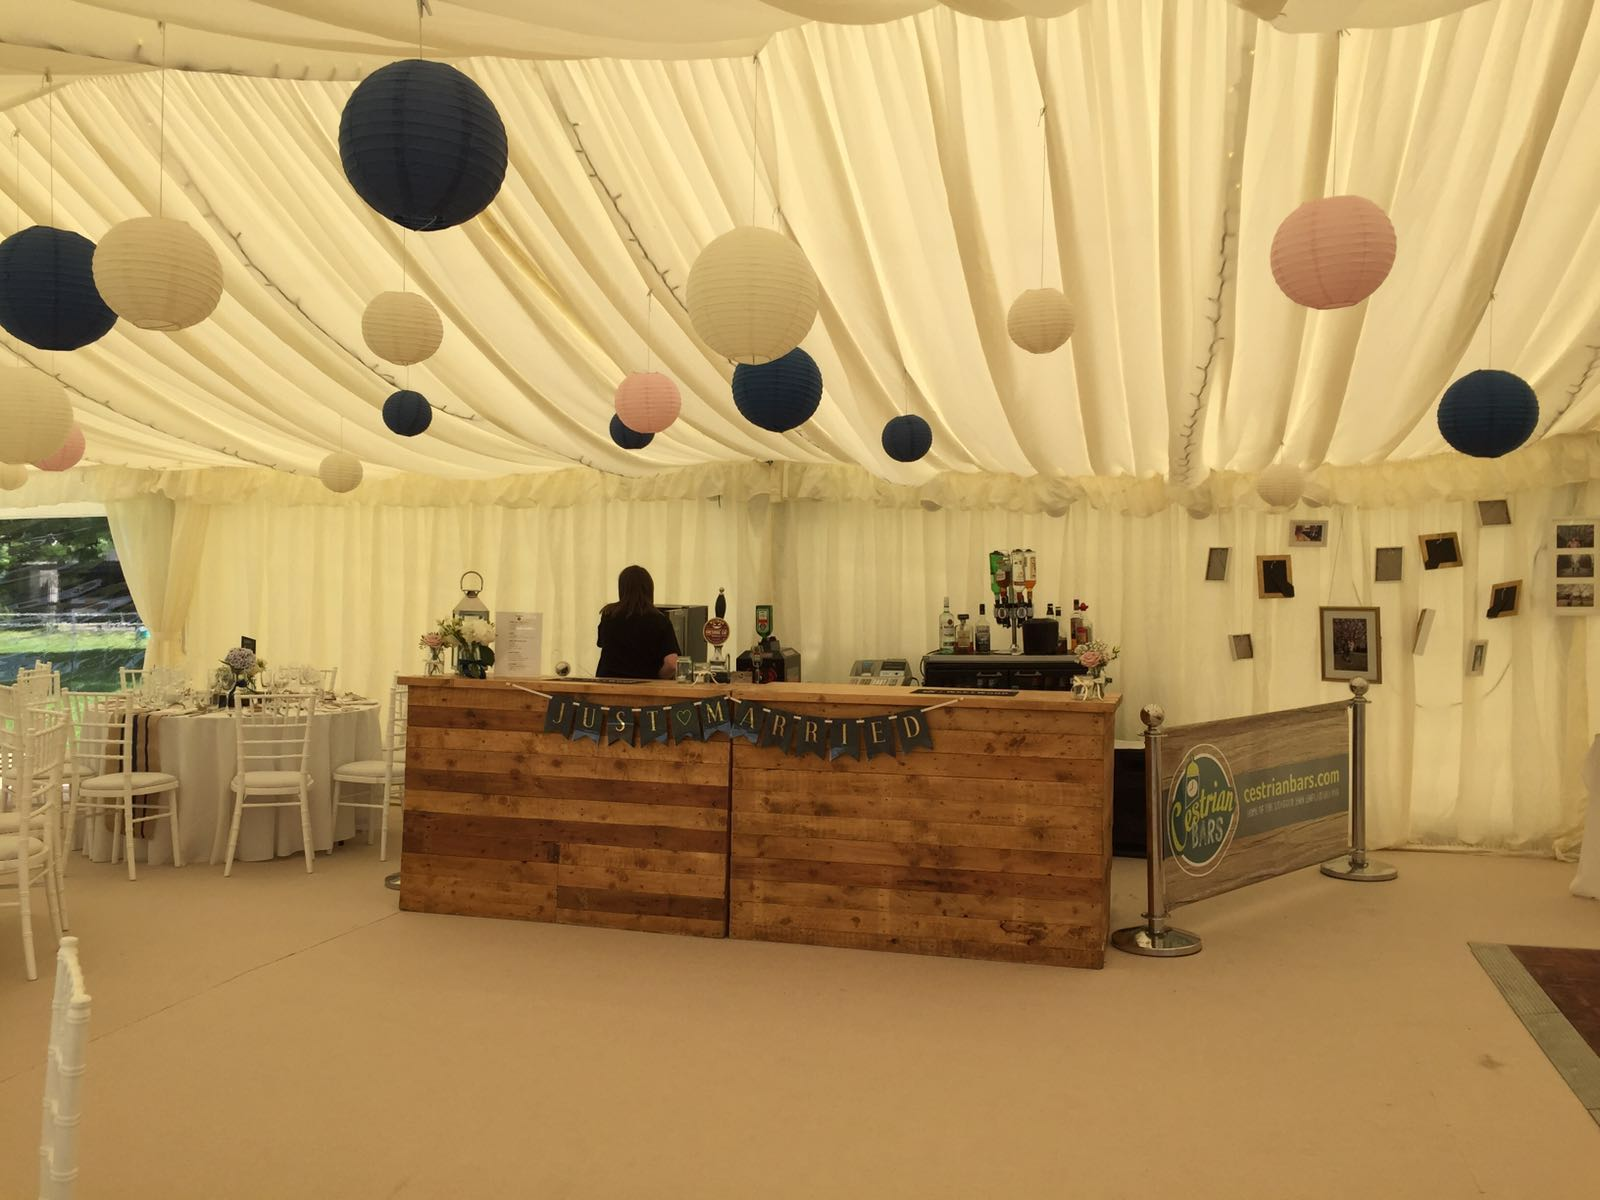 Rustic Wood Bar in Marquee